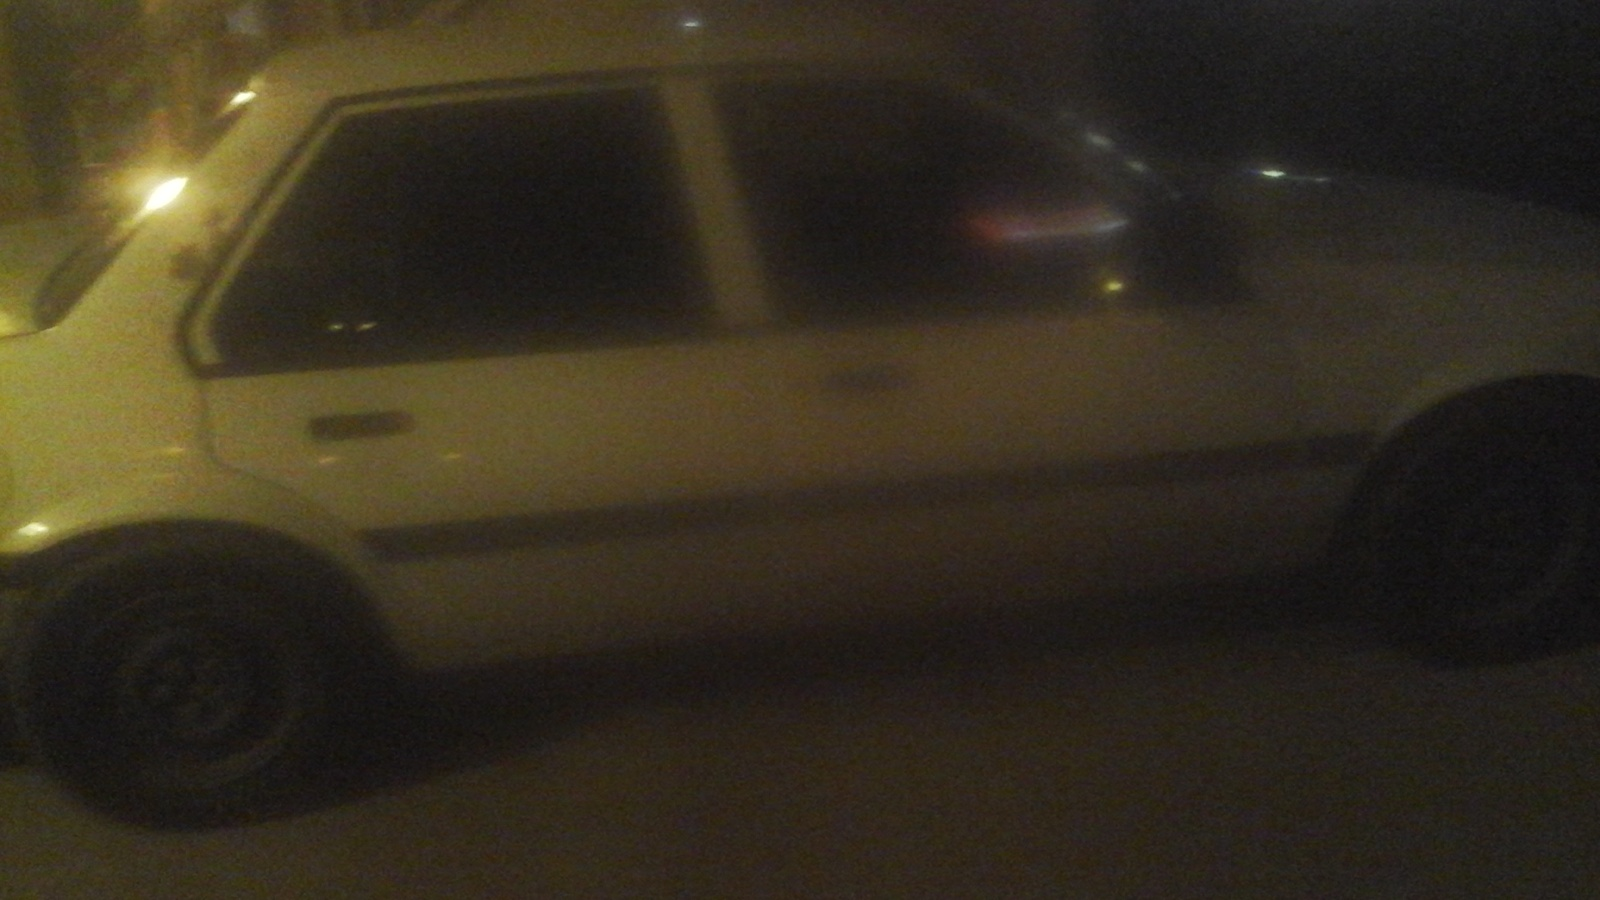 Chevrolet Cavalier Questions - I own a 1993 chevy cavalier and ...